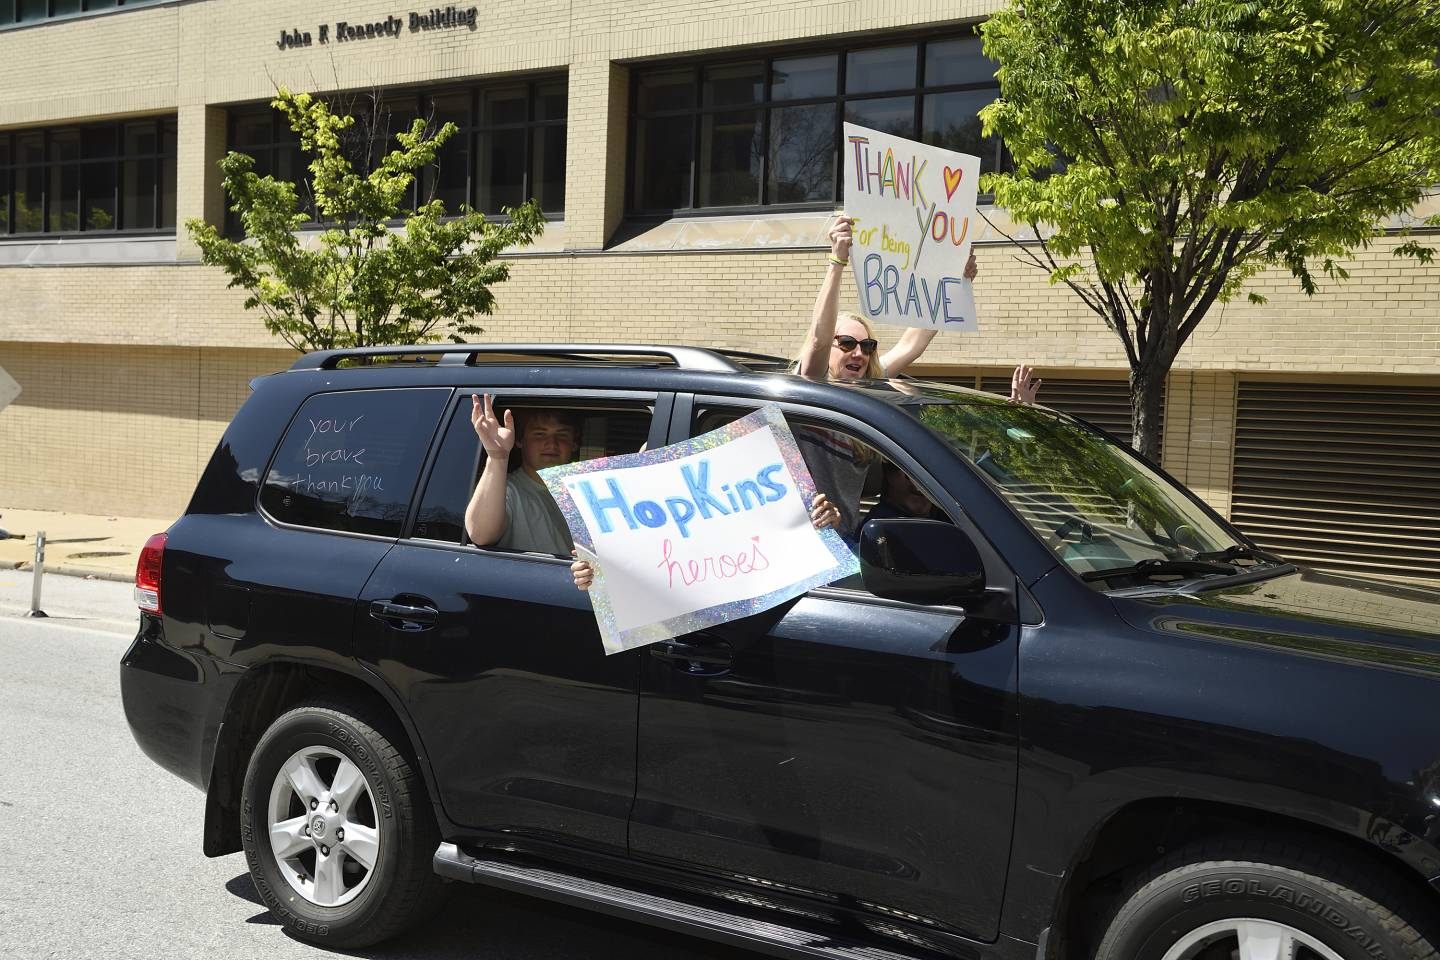 People in a car wave signs thanking health care workers